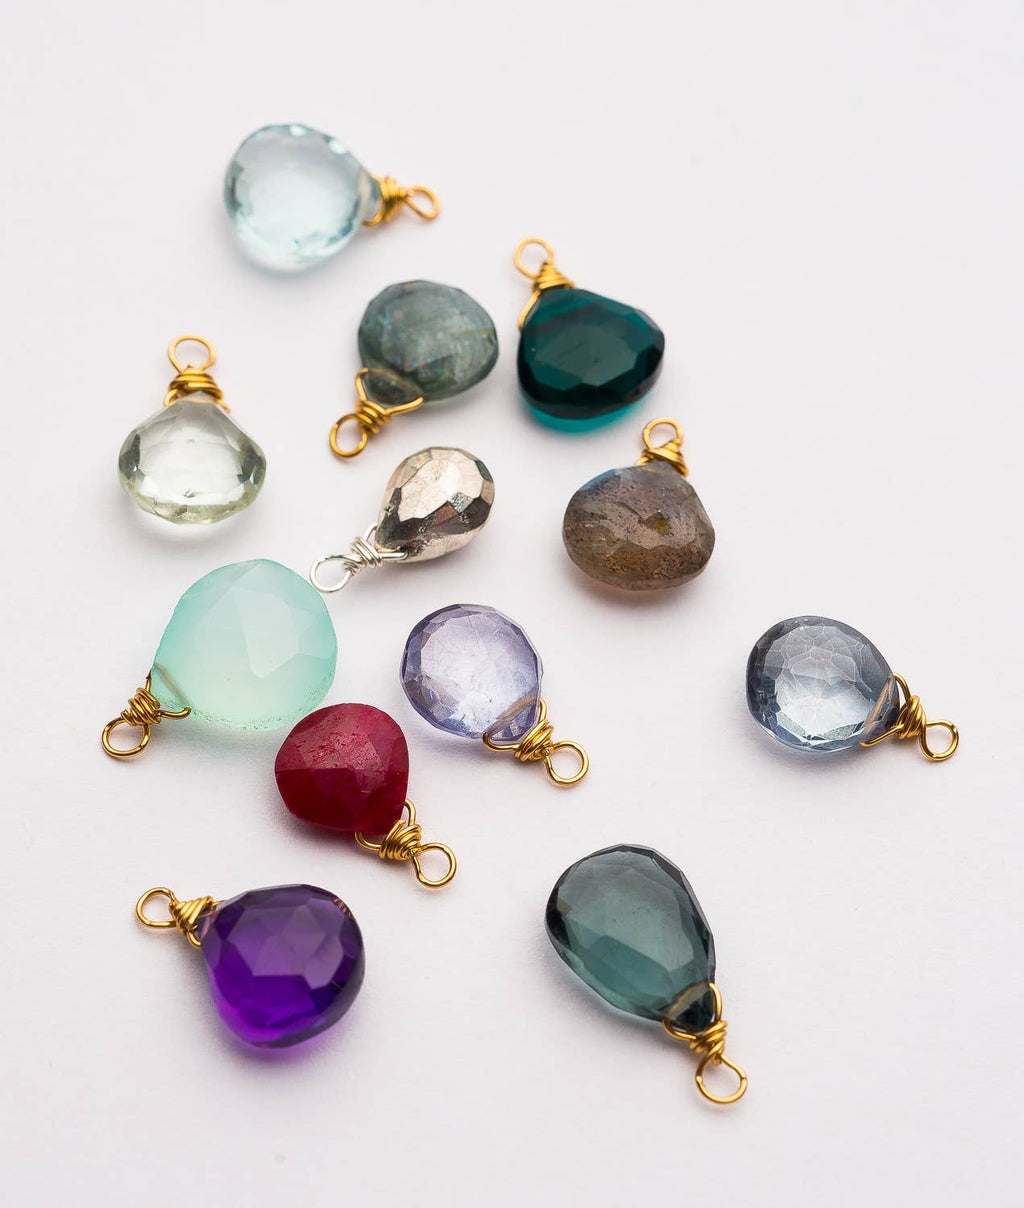 Ruthie and Olive | 3 meals donated for every necklace - The Genius Thing - Gemstone Necklace